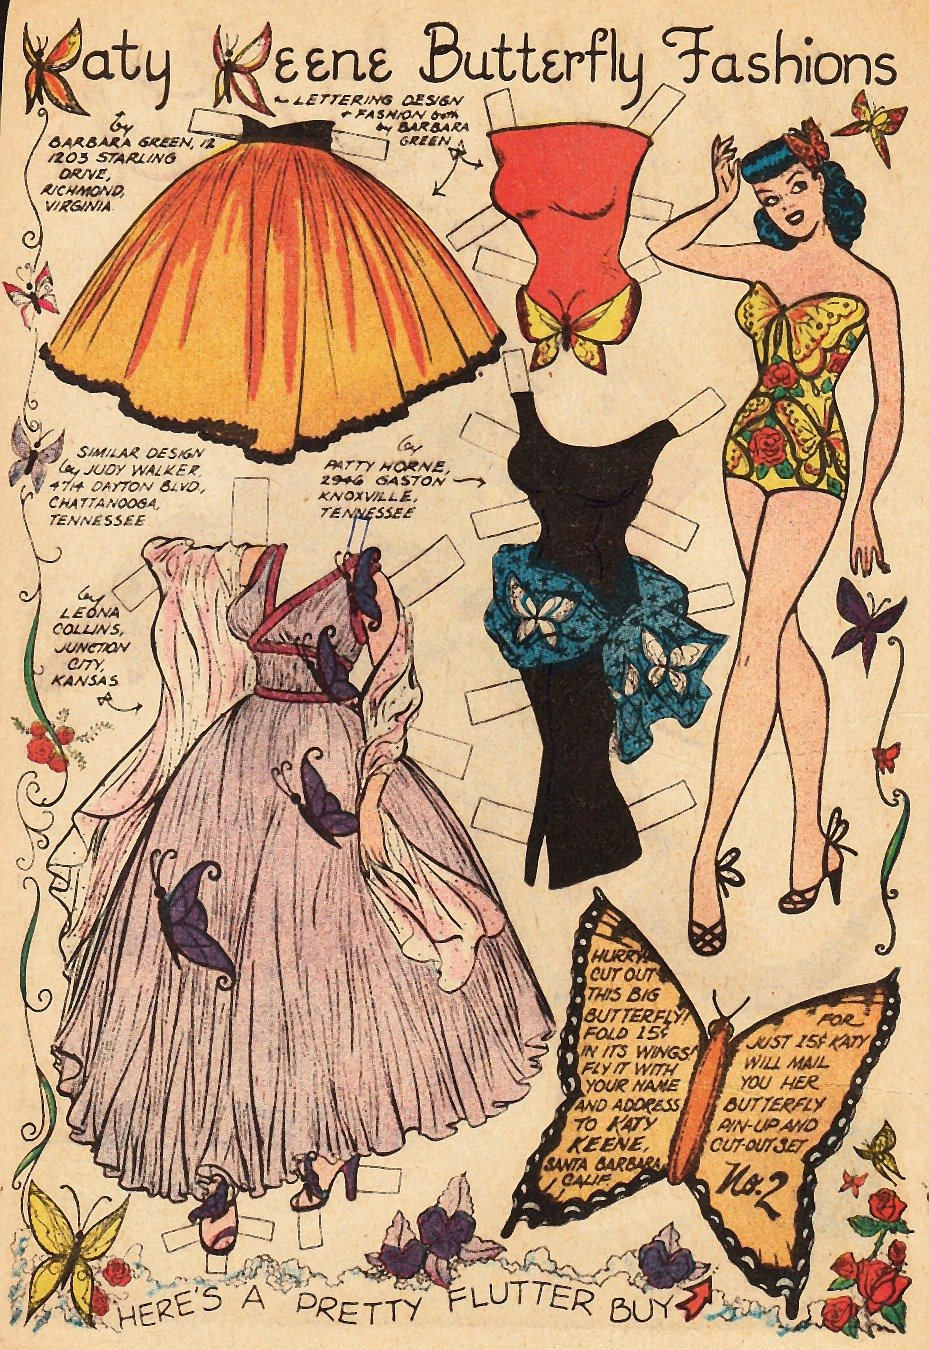 katy keene paper dolls Old katy keene comic book paper dolls, bill woggon art, randy's costume ball - $436 katy keene paper dolls here's one of those great comic book paper doll pages from katy keene by bill woggon this is a randy's costume ball fashions paper doll, probably from the late 50's except for a little.